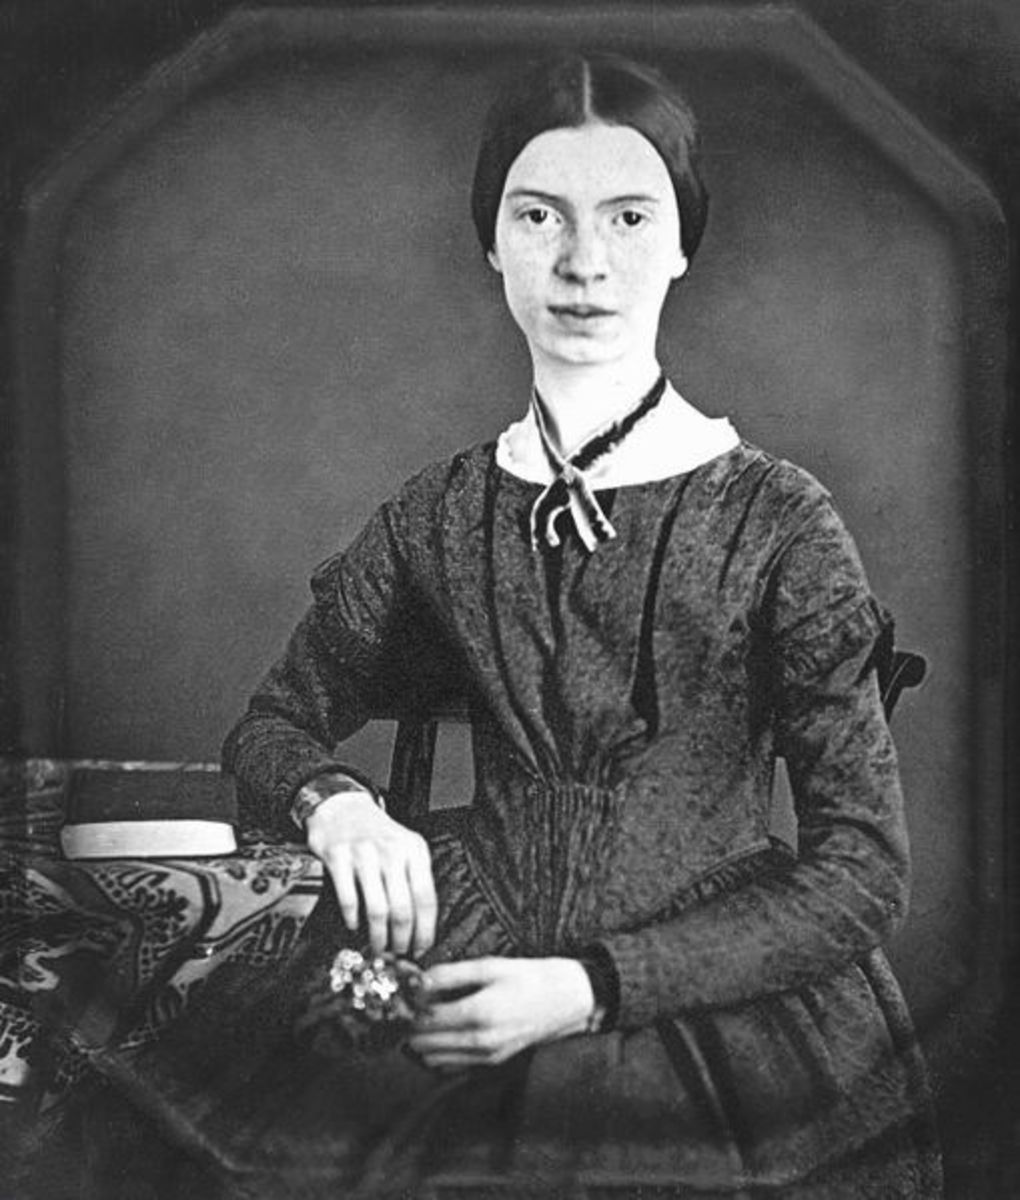 """0014. Emily Dickinson's """"One Sister have I in our house"""""""